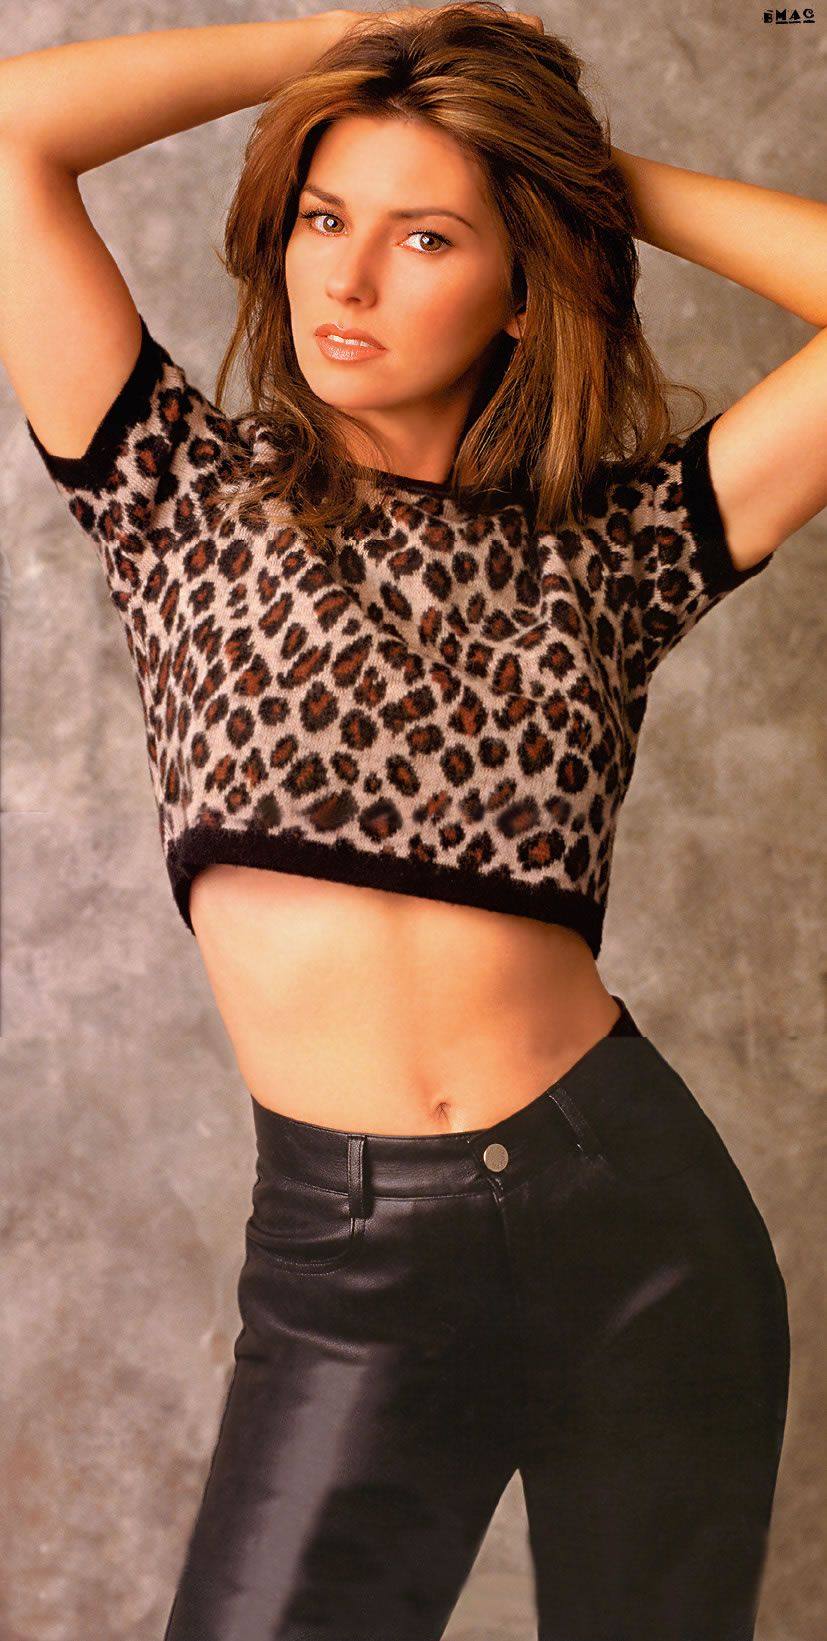 Top 10 Most Beautiful Womens Eyes Social Shania Twain Pictures